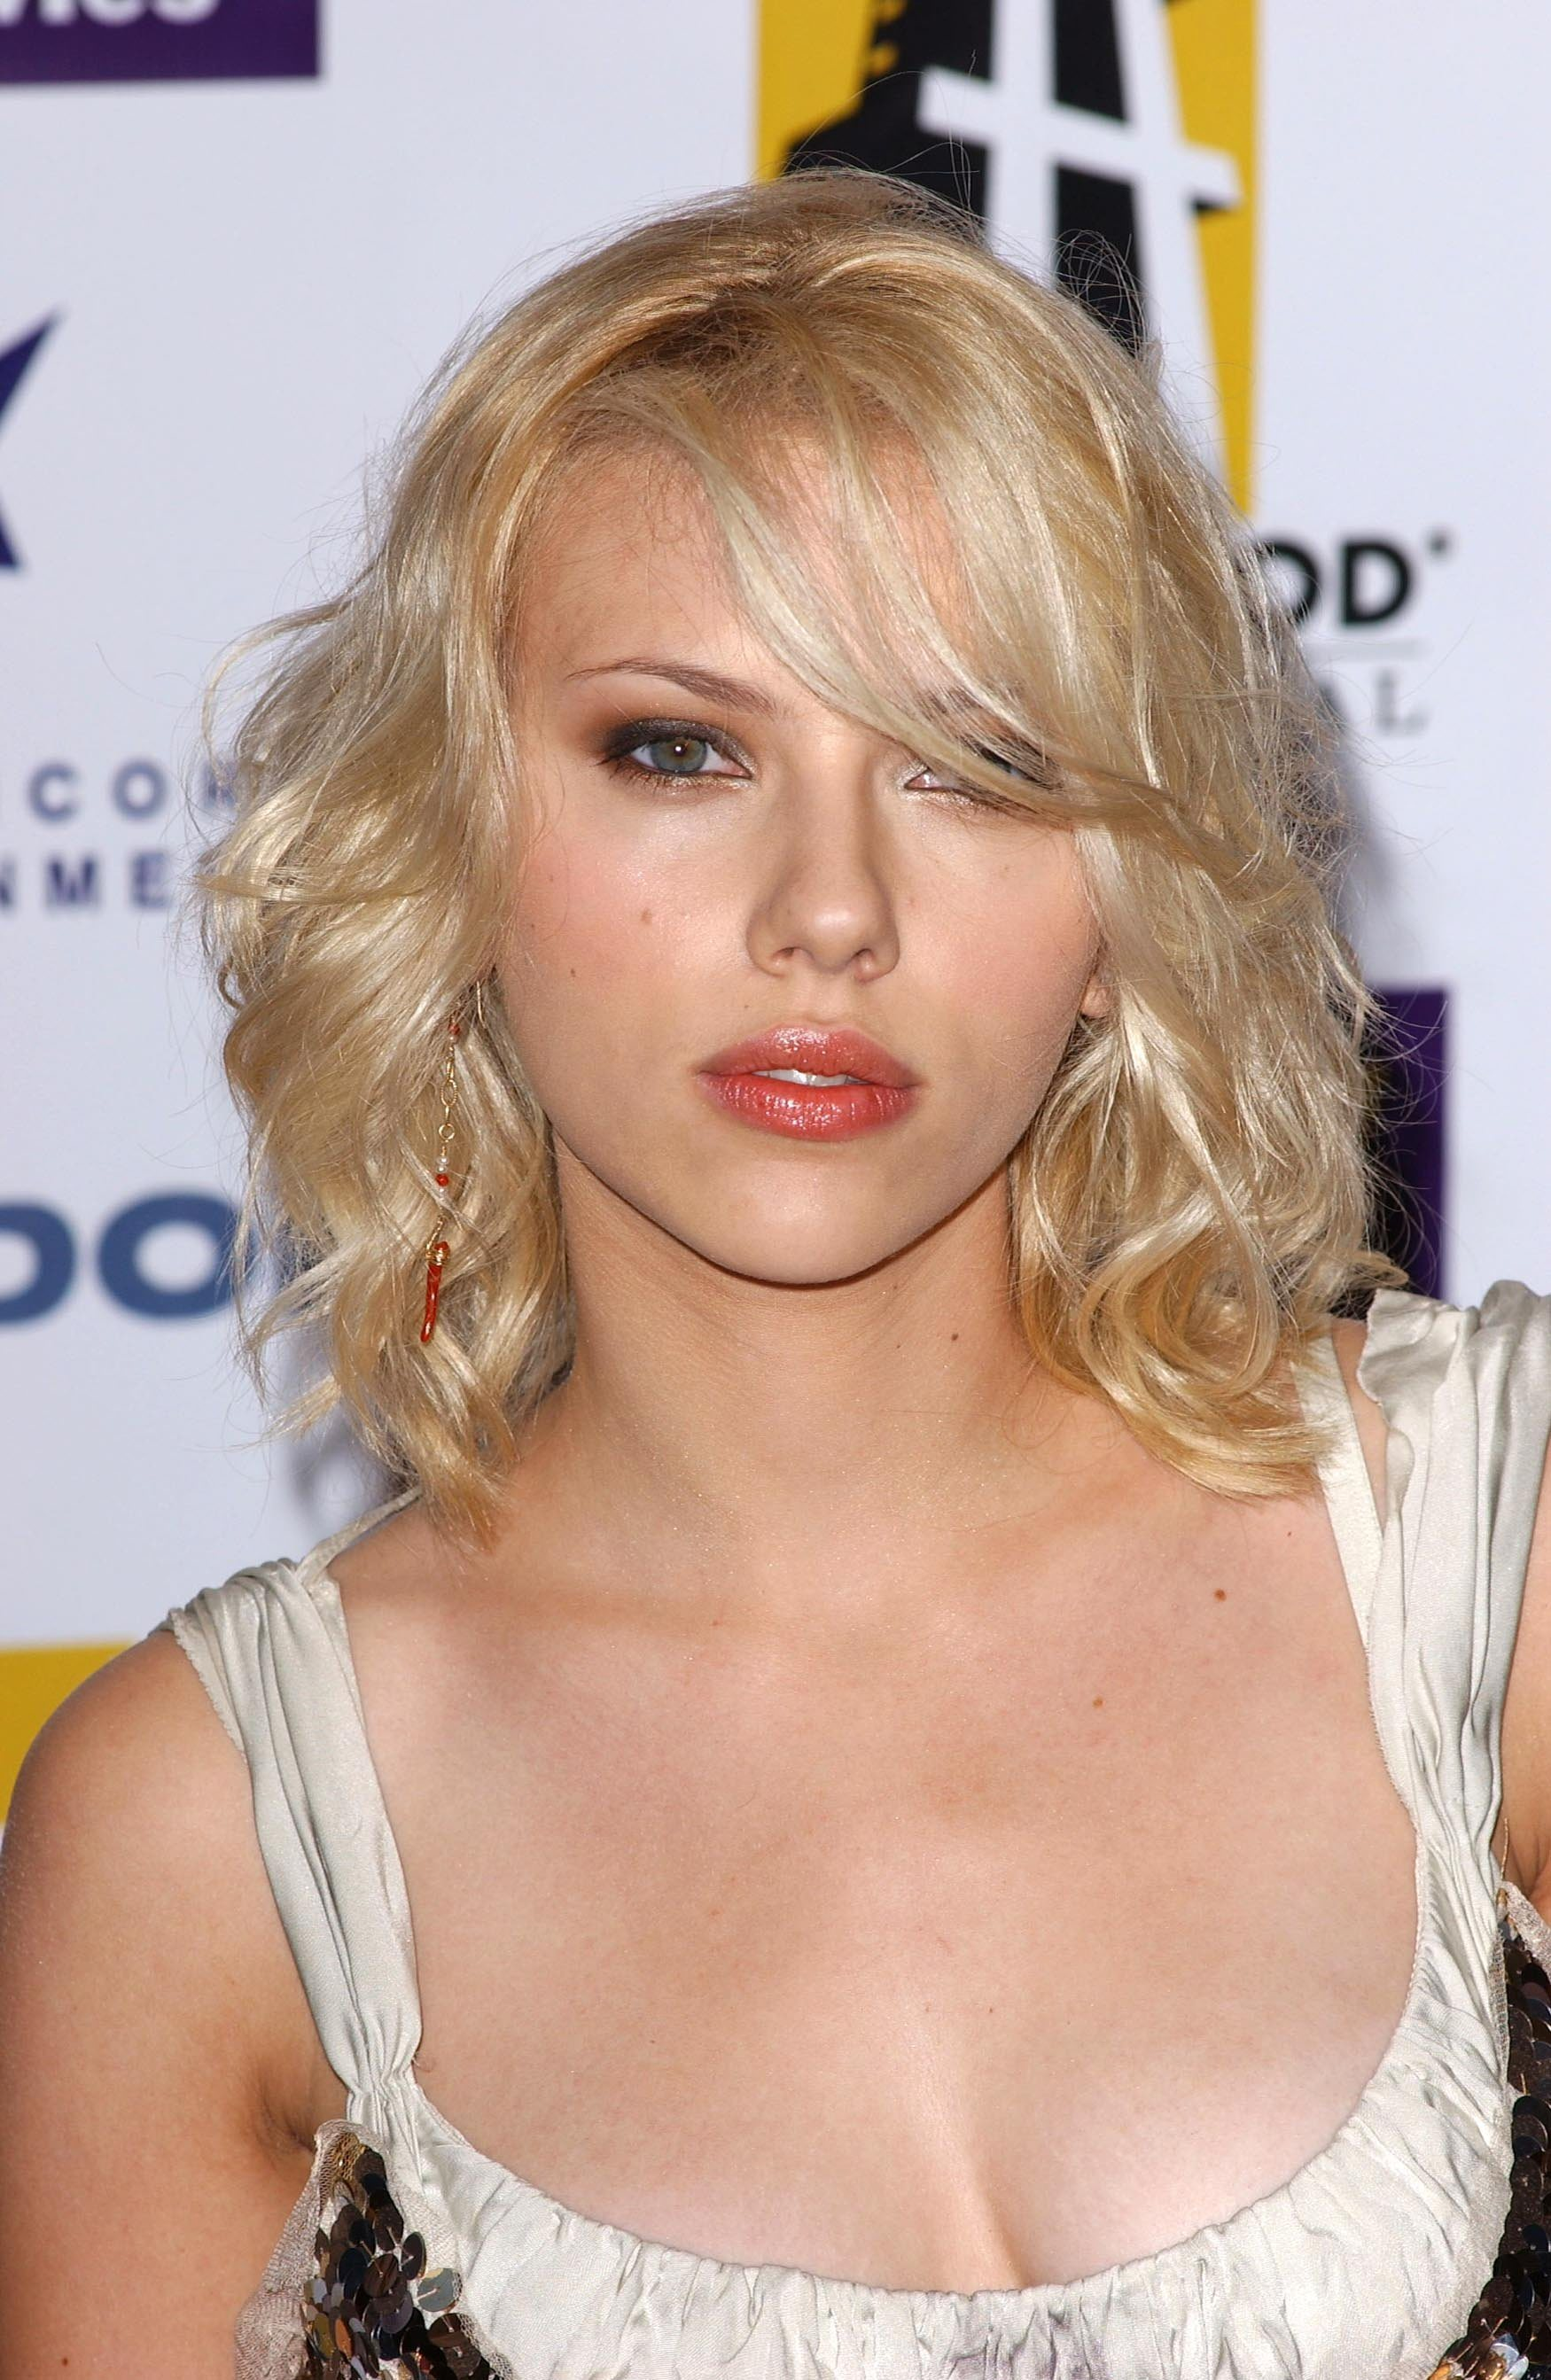 Scarlett Johansson Wallpaper on Scarlett Johansson Hd Wallpaper   Celebrity   Actress   248109